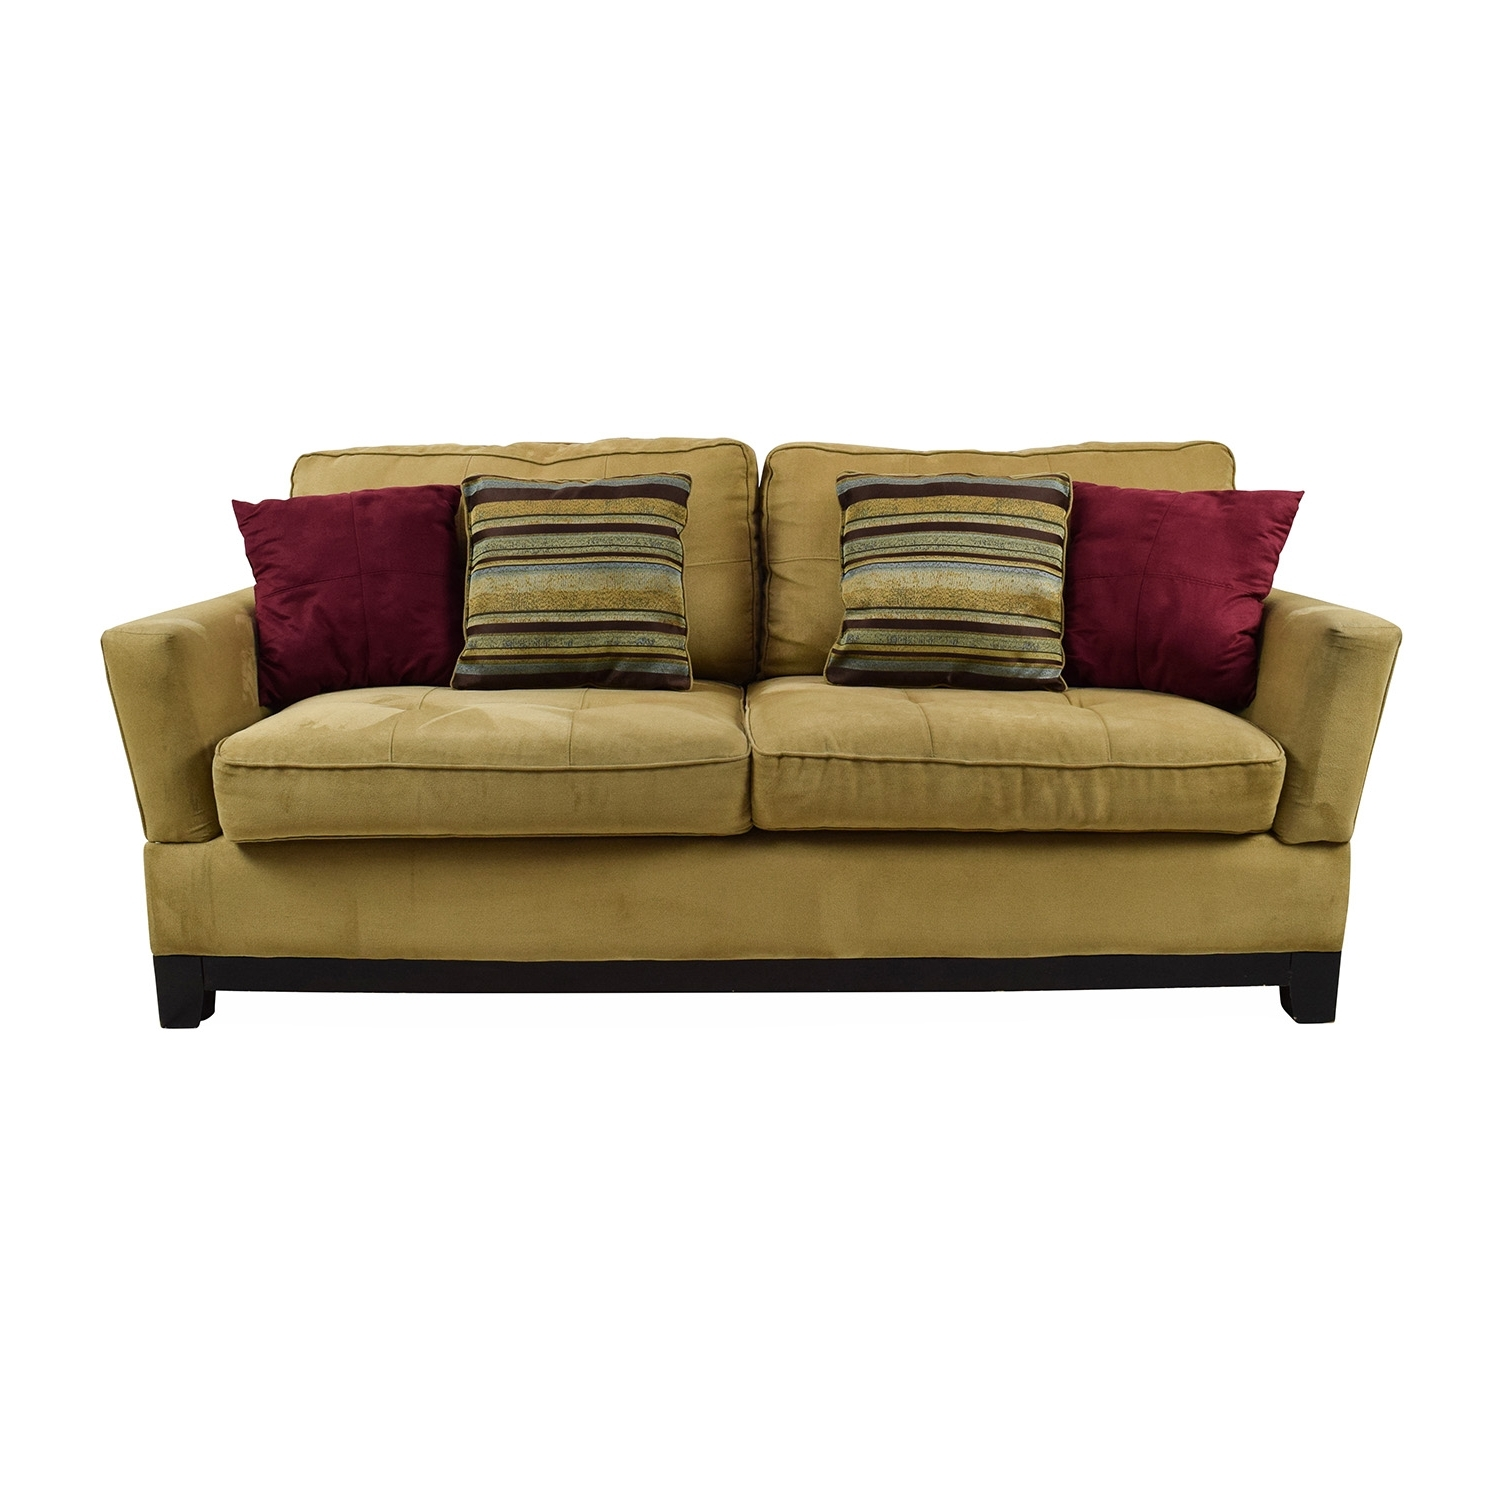 [%78% Off – Jennifer Convertibles Jennifer Convertibles Tan Sofa / Sofas Throughout Popular Jennifer Sofas|Jennifer Sofas Inside Most Recently Released 78% Off – Jennifer Convertibles Jennifer Convertibles Tan Sofa / Sofas|Famous Jennifer Sofas With 78% Off – Jennifer Convertibles Jennifer Convertibles Tan Sofa / Sofas|Trendy 78% Off – Jennifer Convertibles Jennifer Convertibles Tan Sofa / Sofas Intended For Jennifer Sofas%] (View 7 of 15)